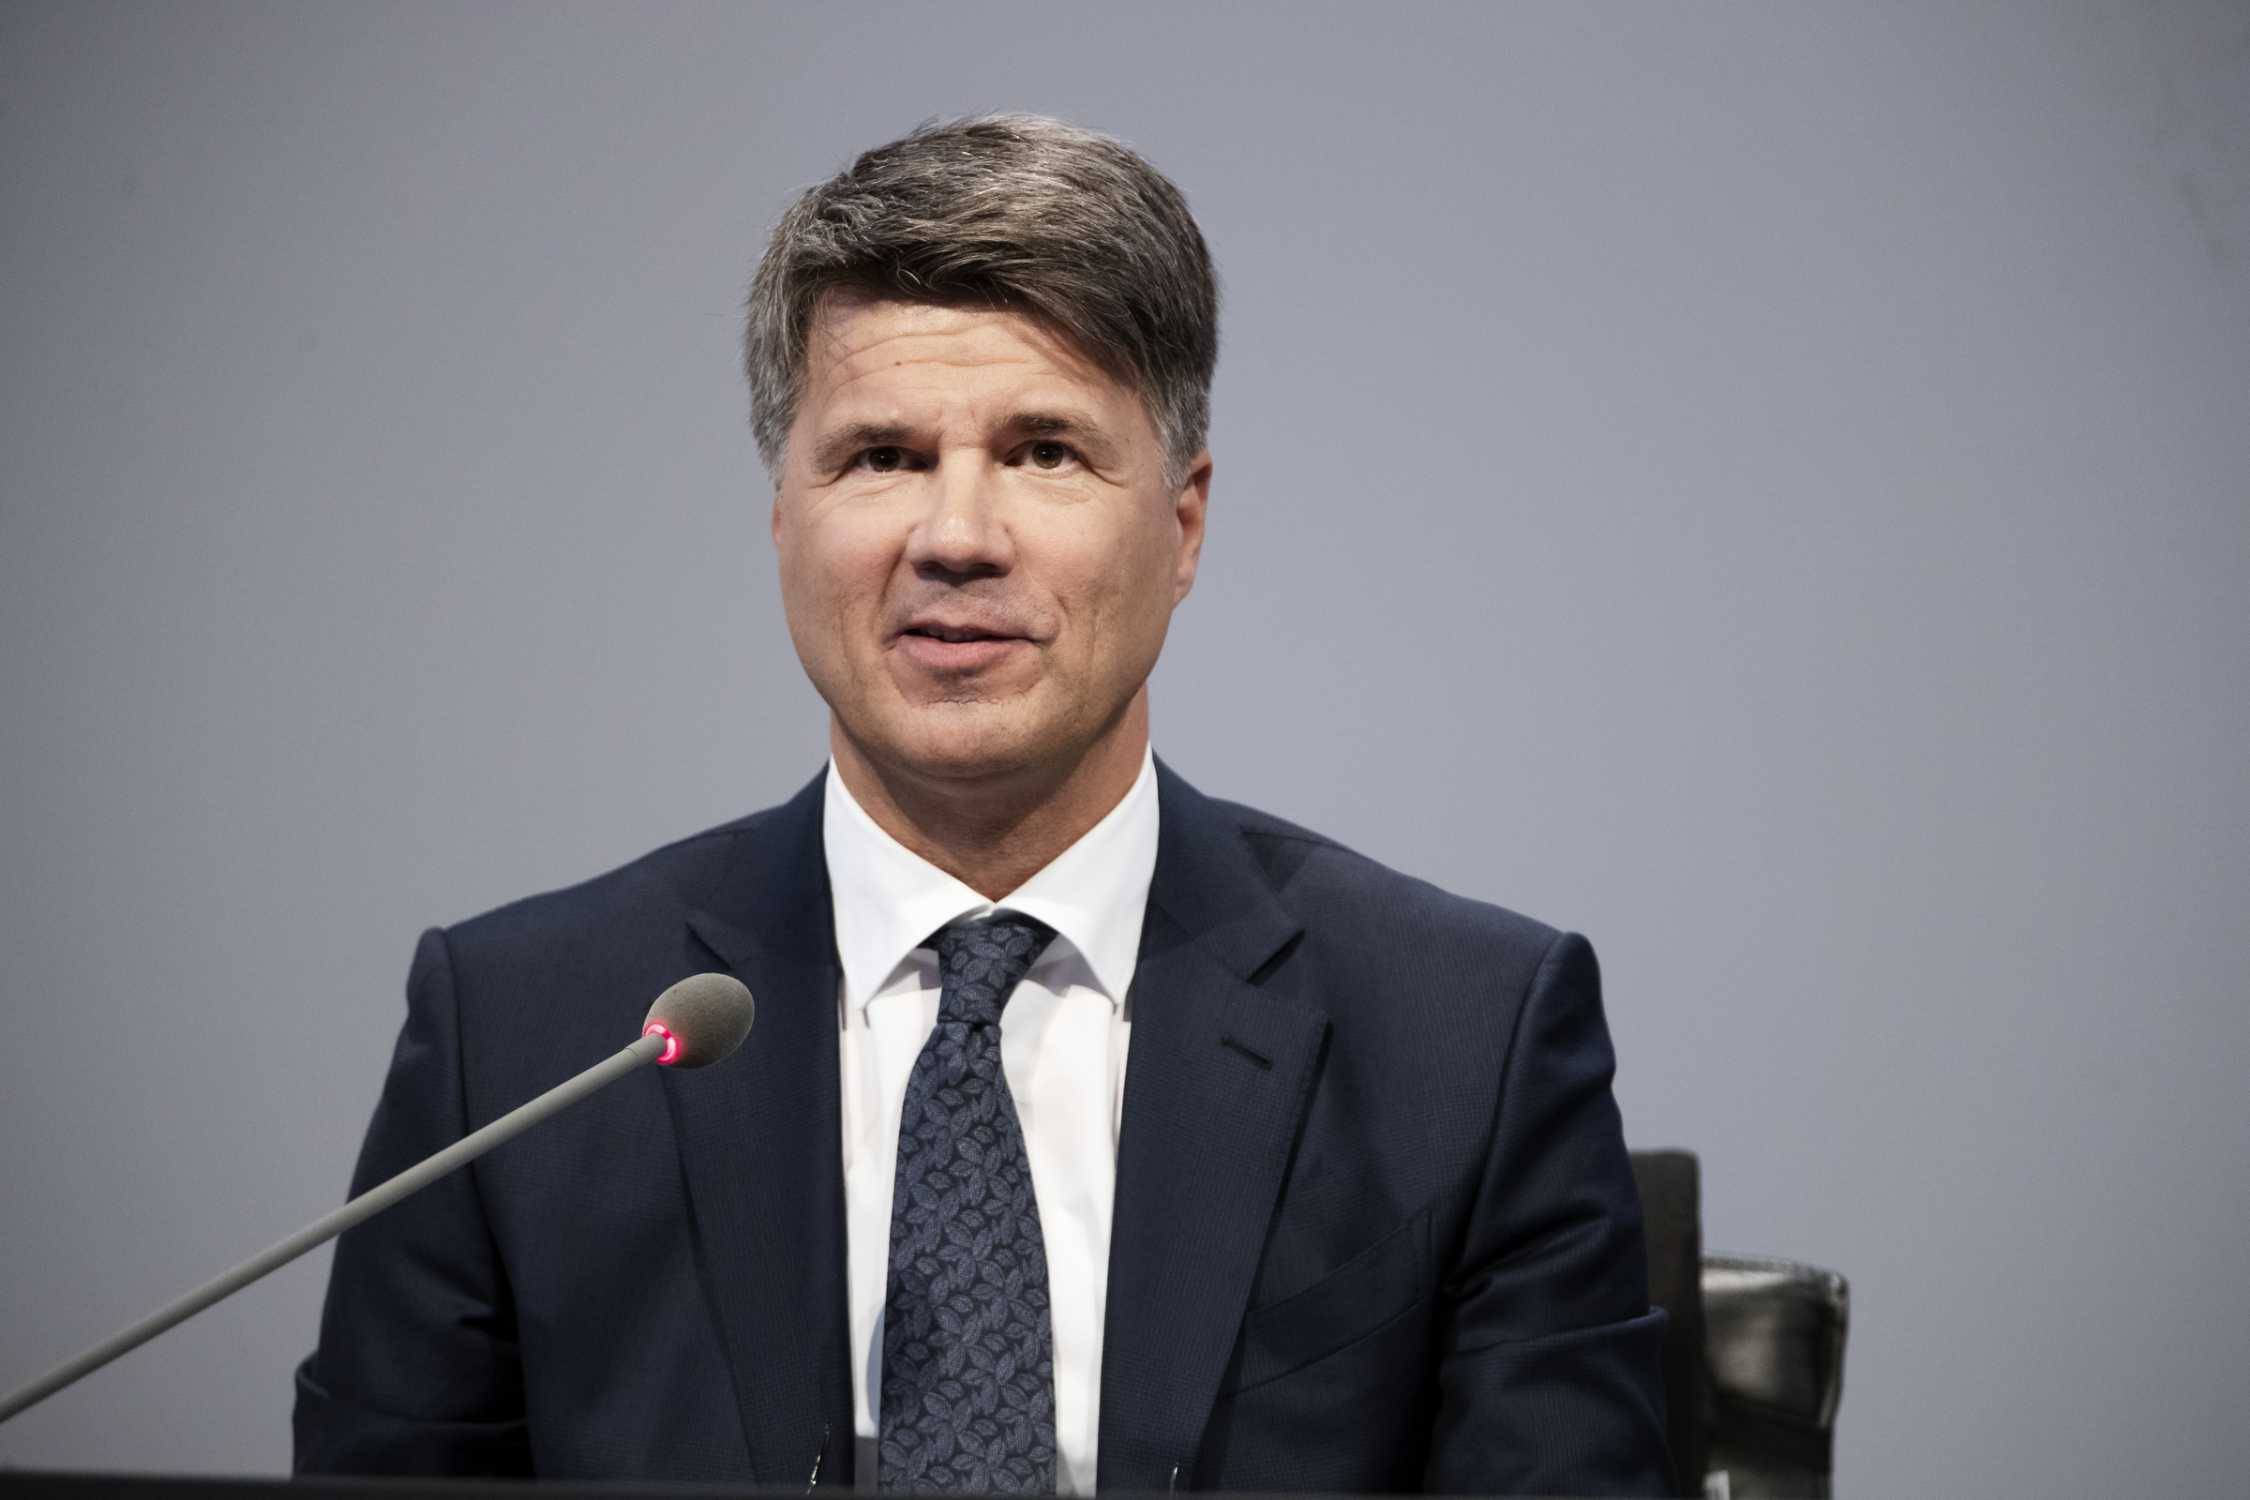 99th Annual General Meeting of BMW AG at Olympiahalle in Munich on 16 May 2019. Harald Krüger, Chairman of the Board of Management of BMW AG (05/2019)